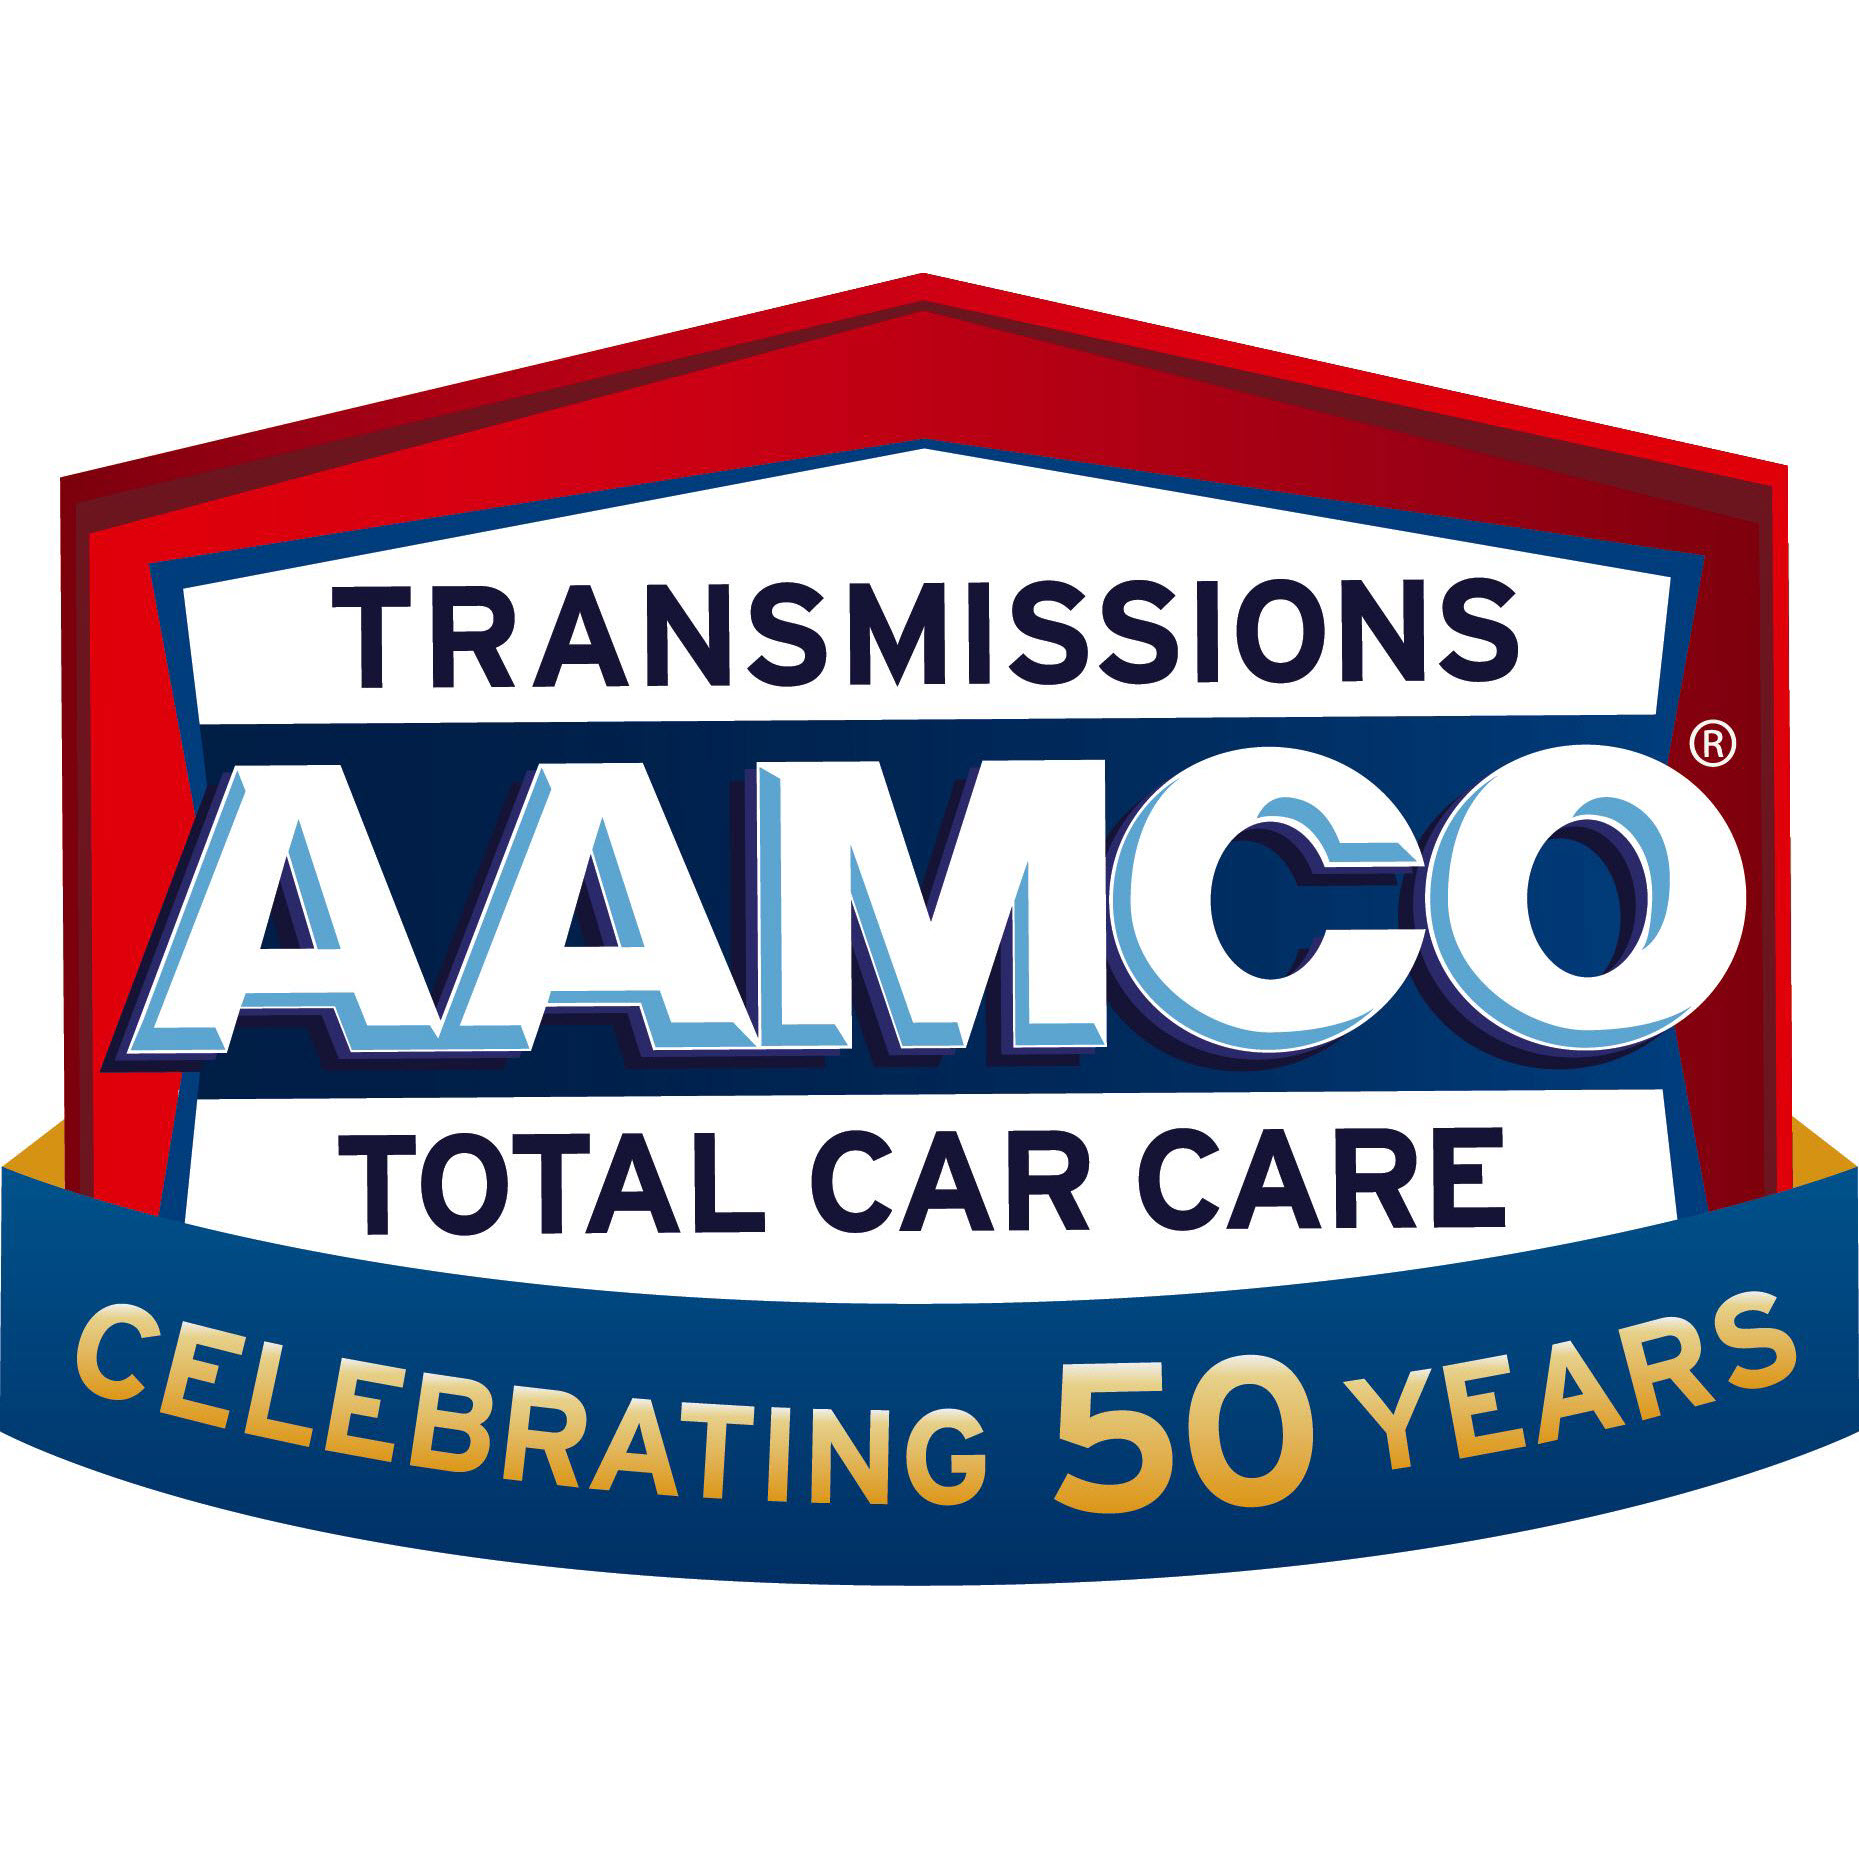 Auto repair shops near me and reviews - Aamco Transmissions And Total Car Care